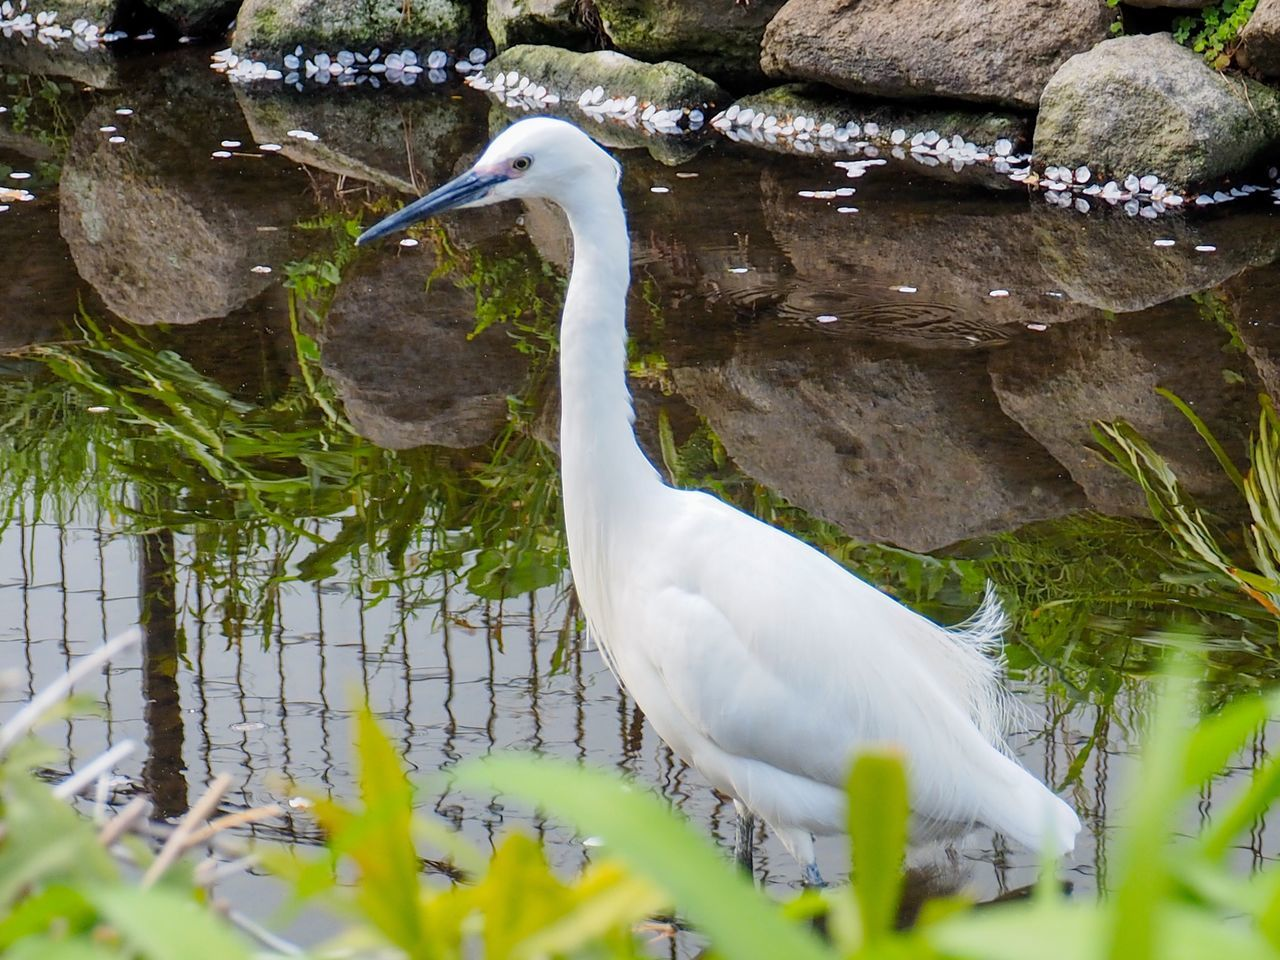 Animals In The Wild White Color Bird Animal Wildlife Animal Themes One Animal Nature Outdoors No People Day Water Beauty In Nature Close-up Springtime Tokyo Street Photography Japan Photography Focus On Foreground Freshness Egretta Garzetta Bird